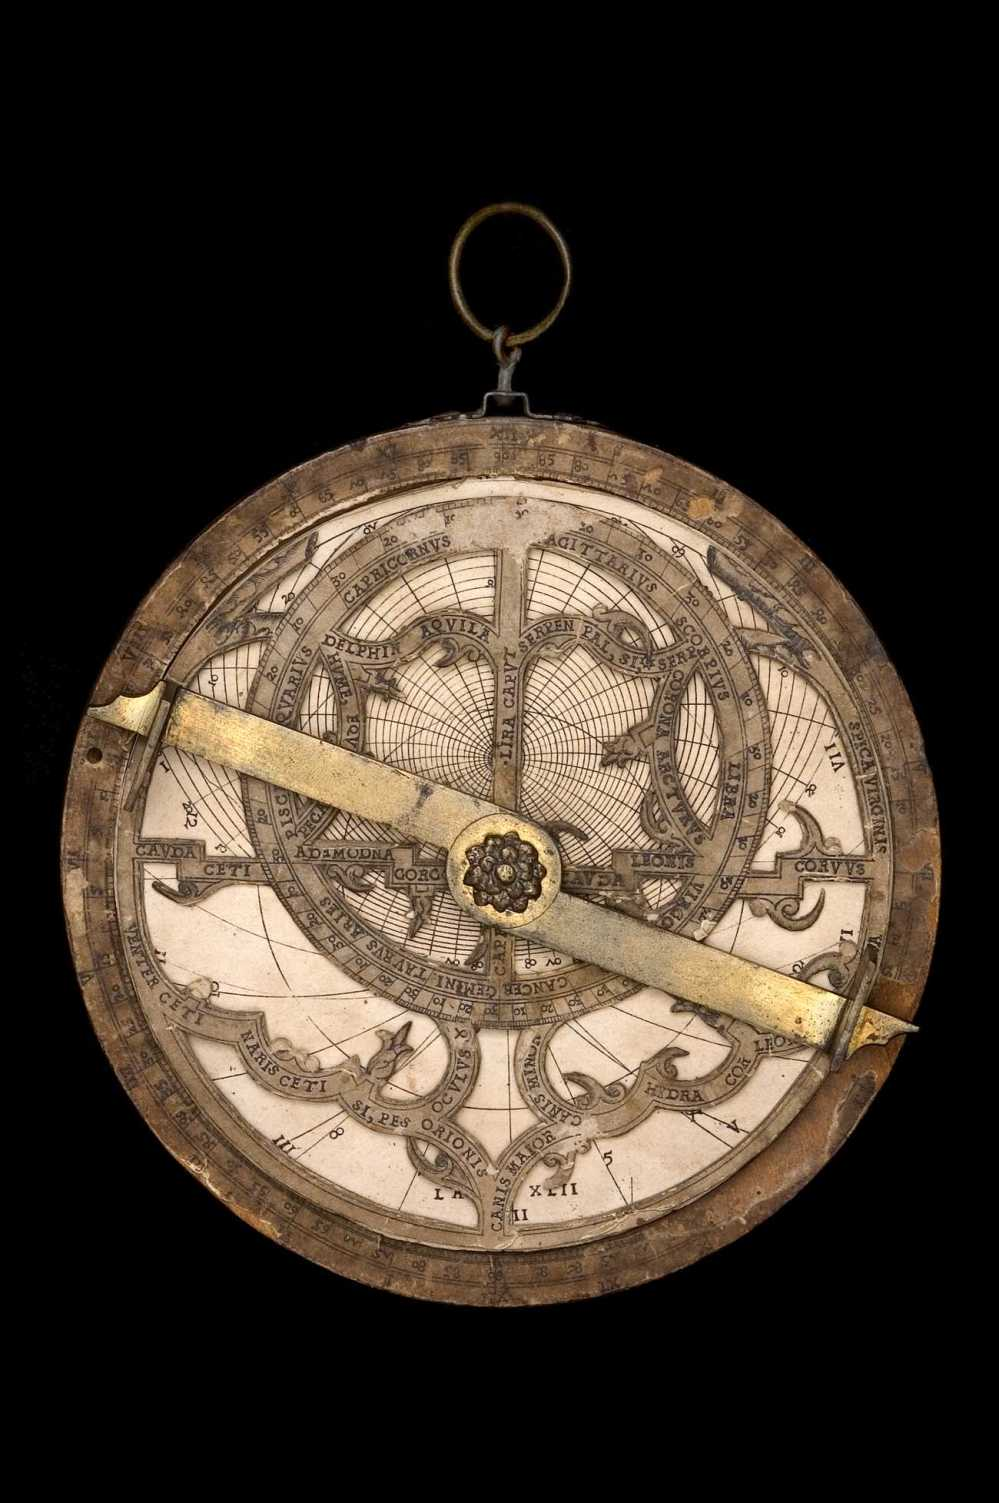 preview image for Paper Astrolabe, by Georg Hartmann, Nuremberg, 1542